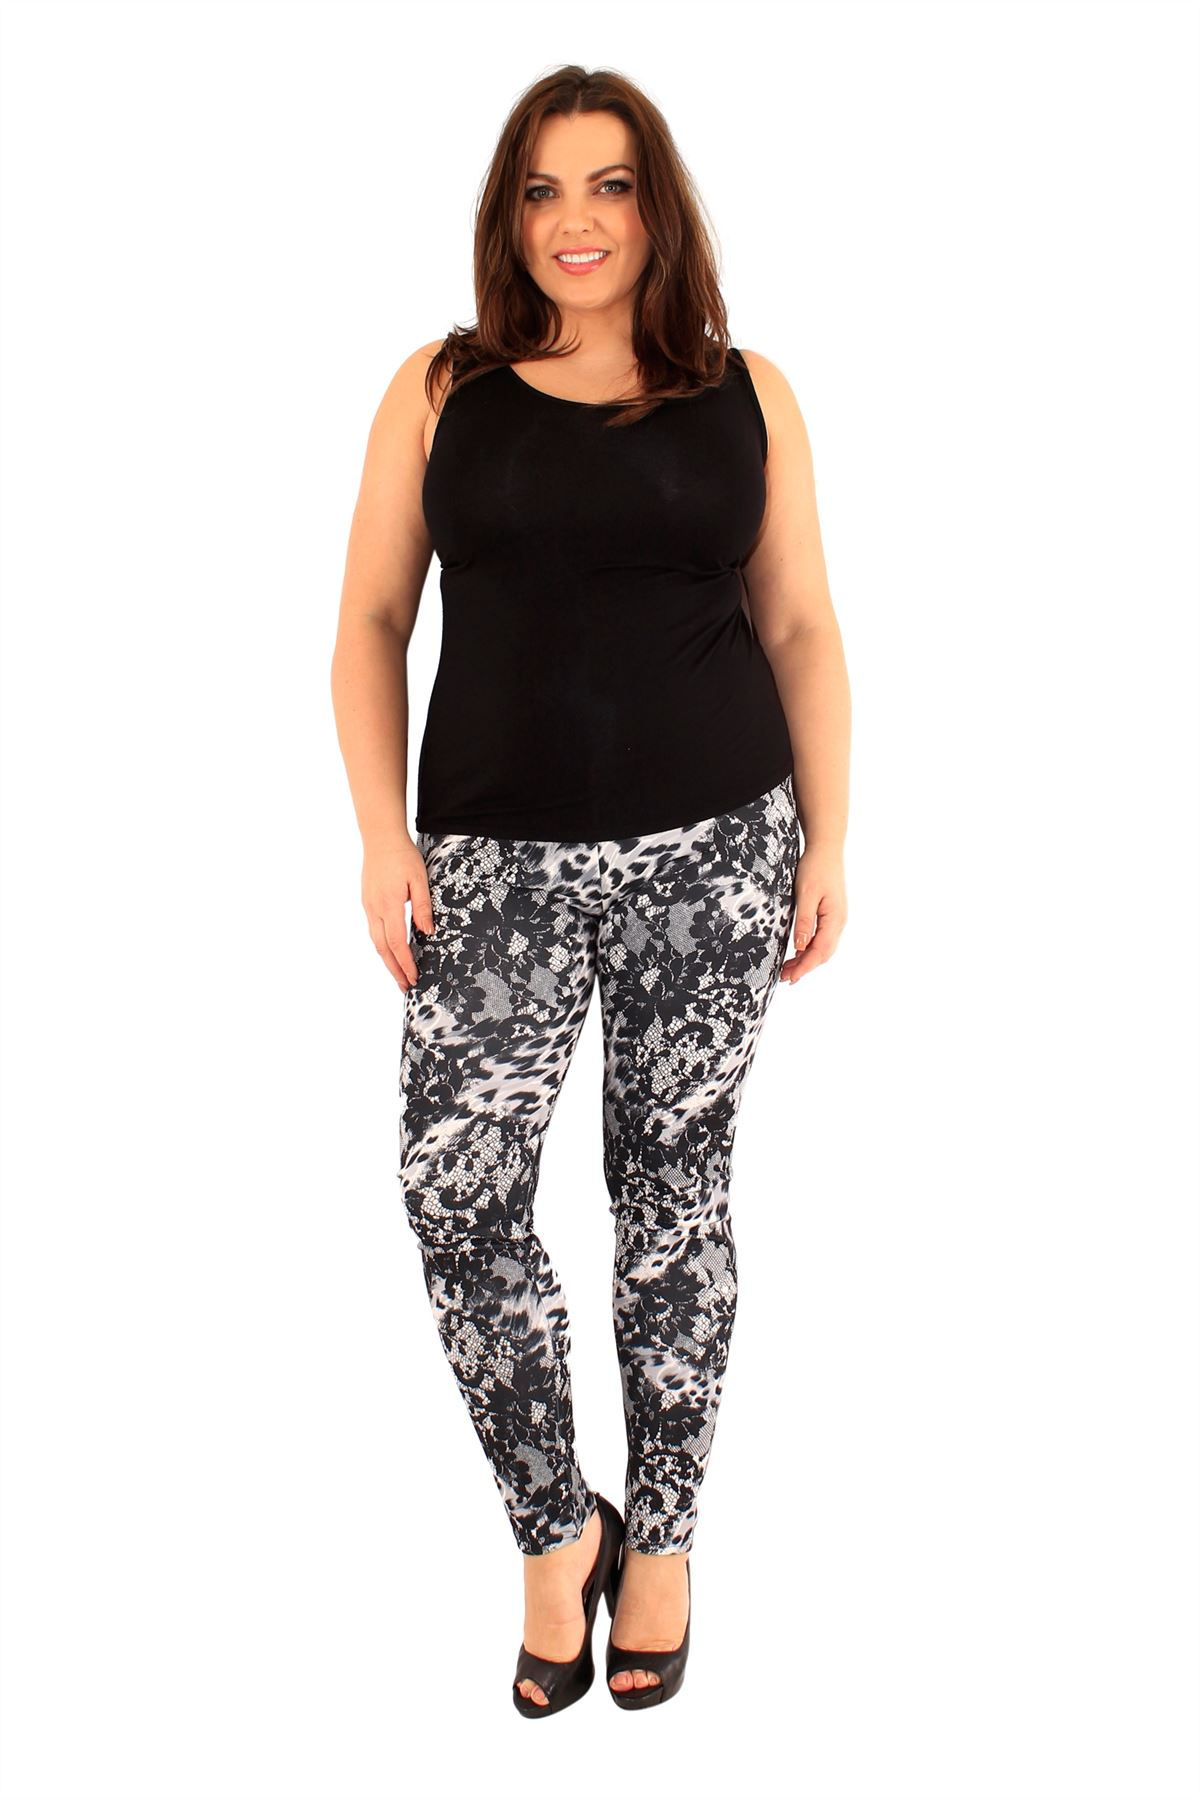 Fantastic 10 Best Printed Pants For Women 2018 - Printed Joggers And Trousers For Winter